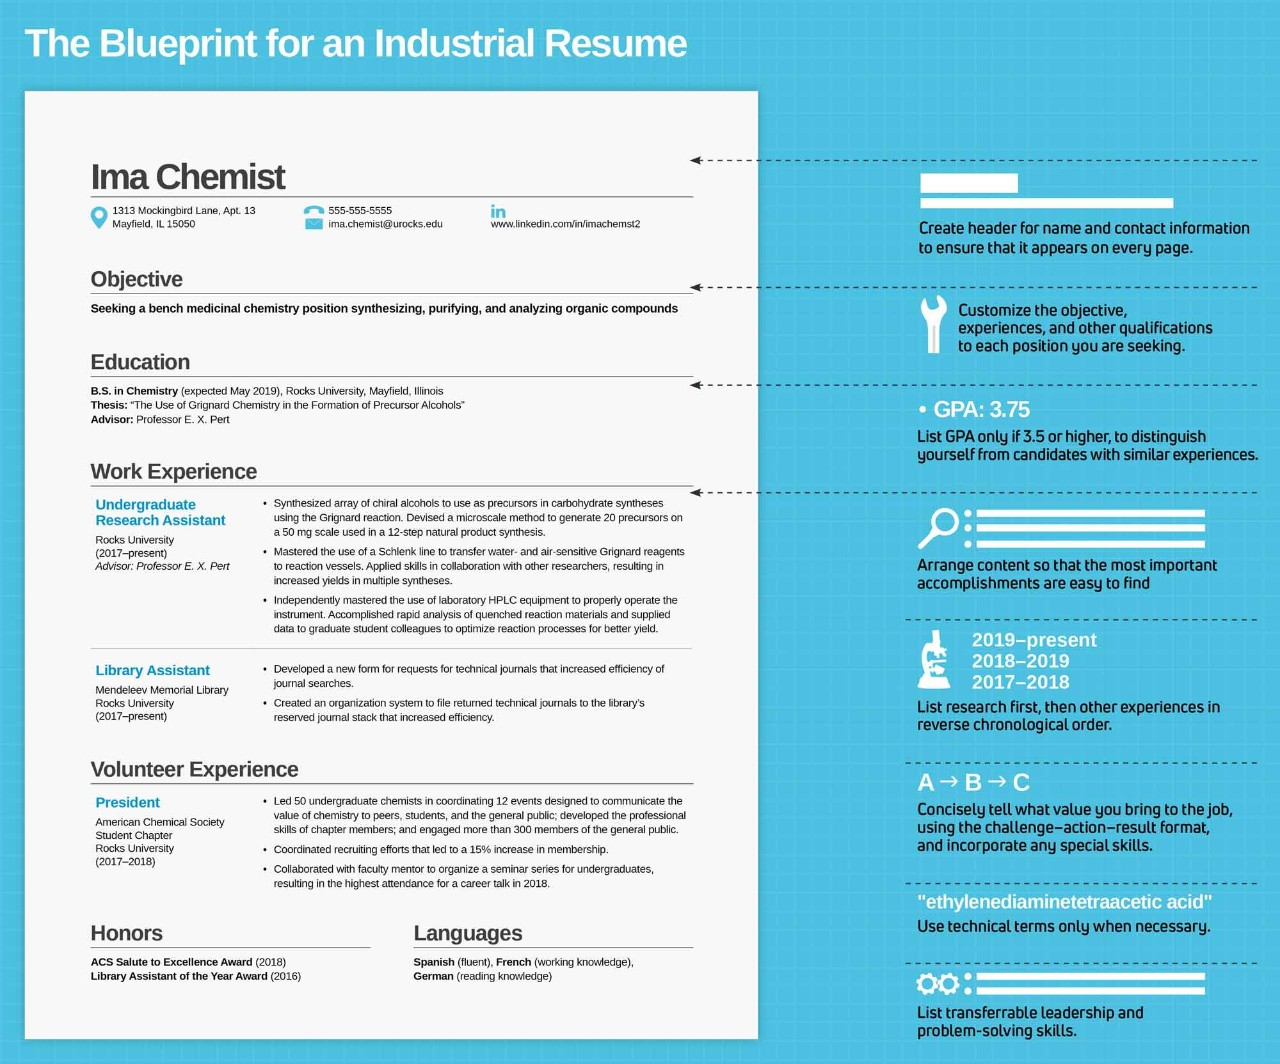 blueprint-for-an-industrial-resume